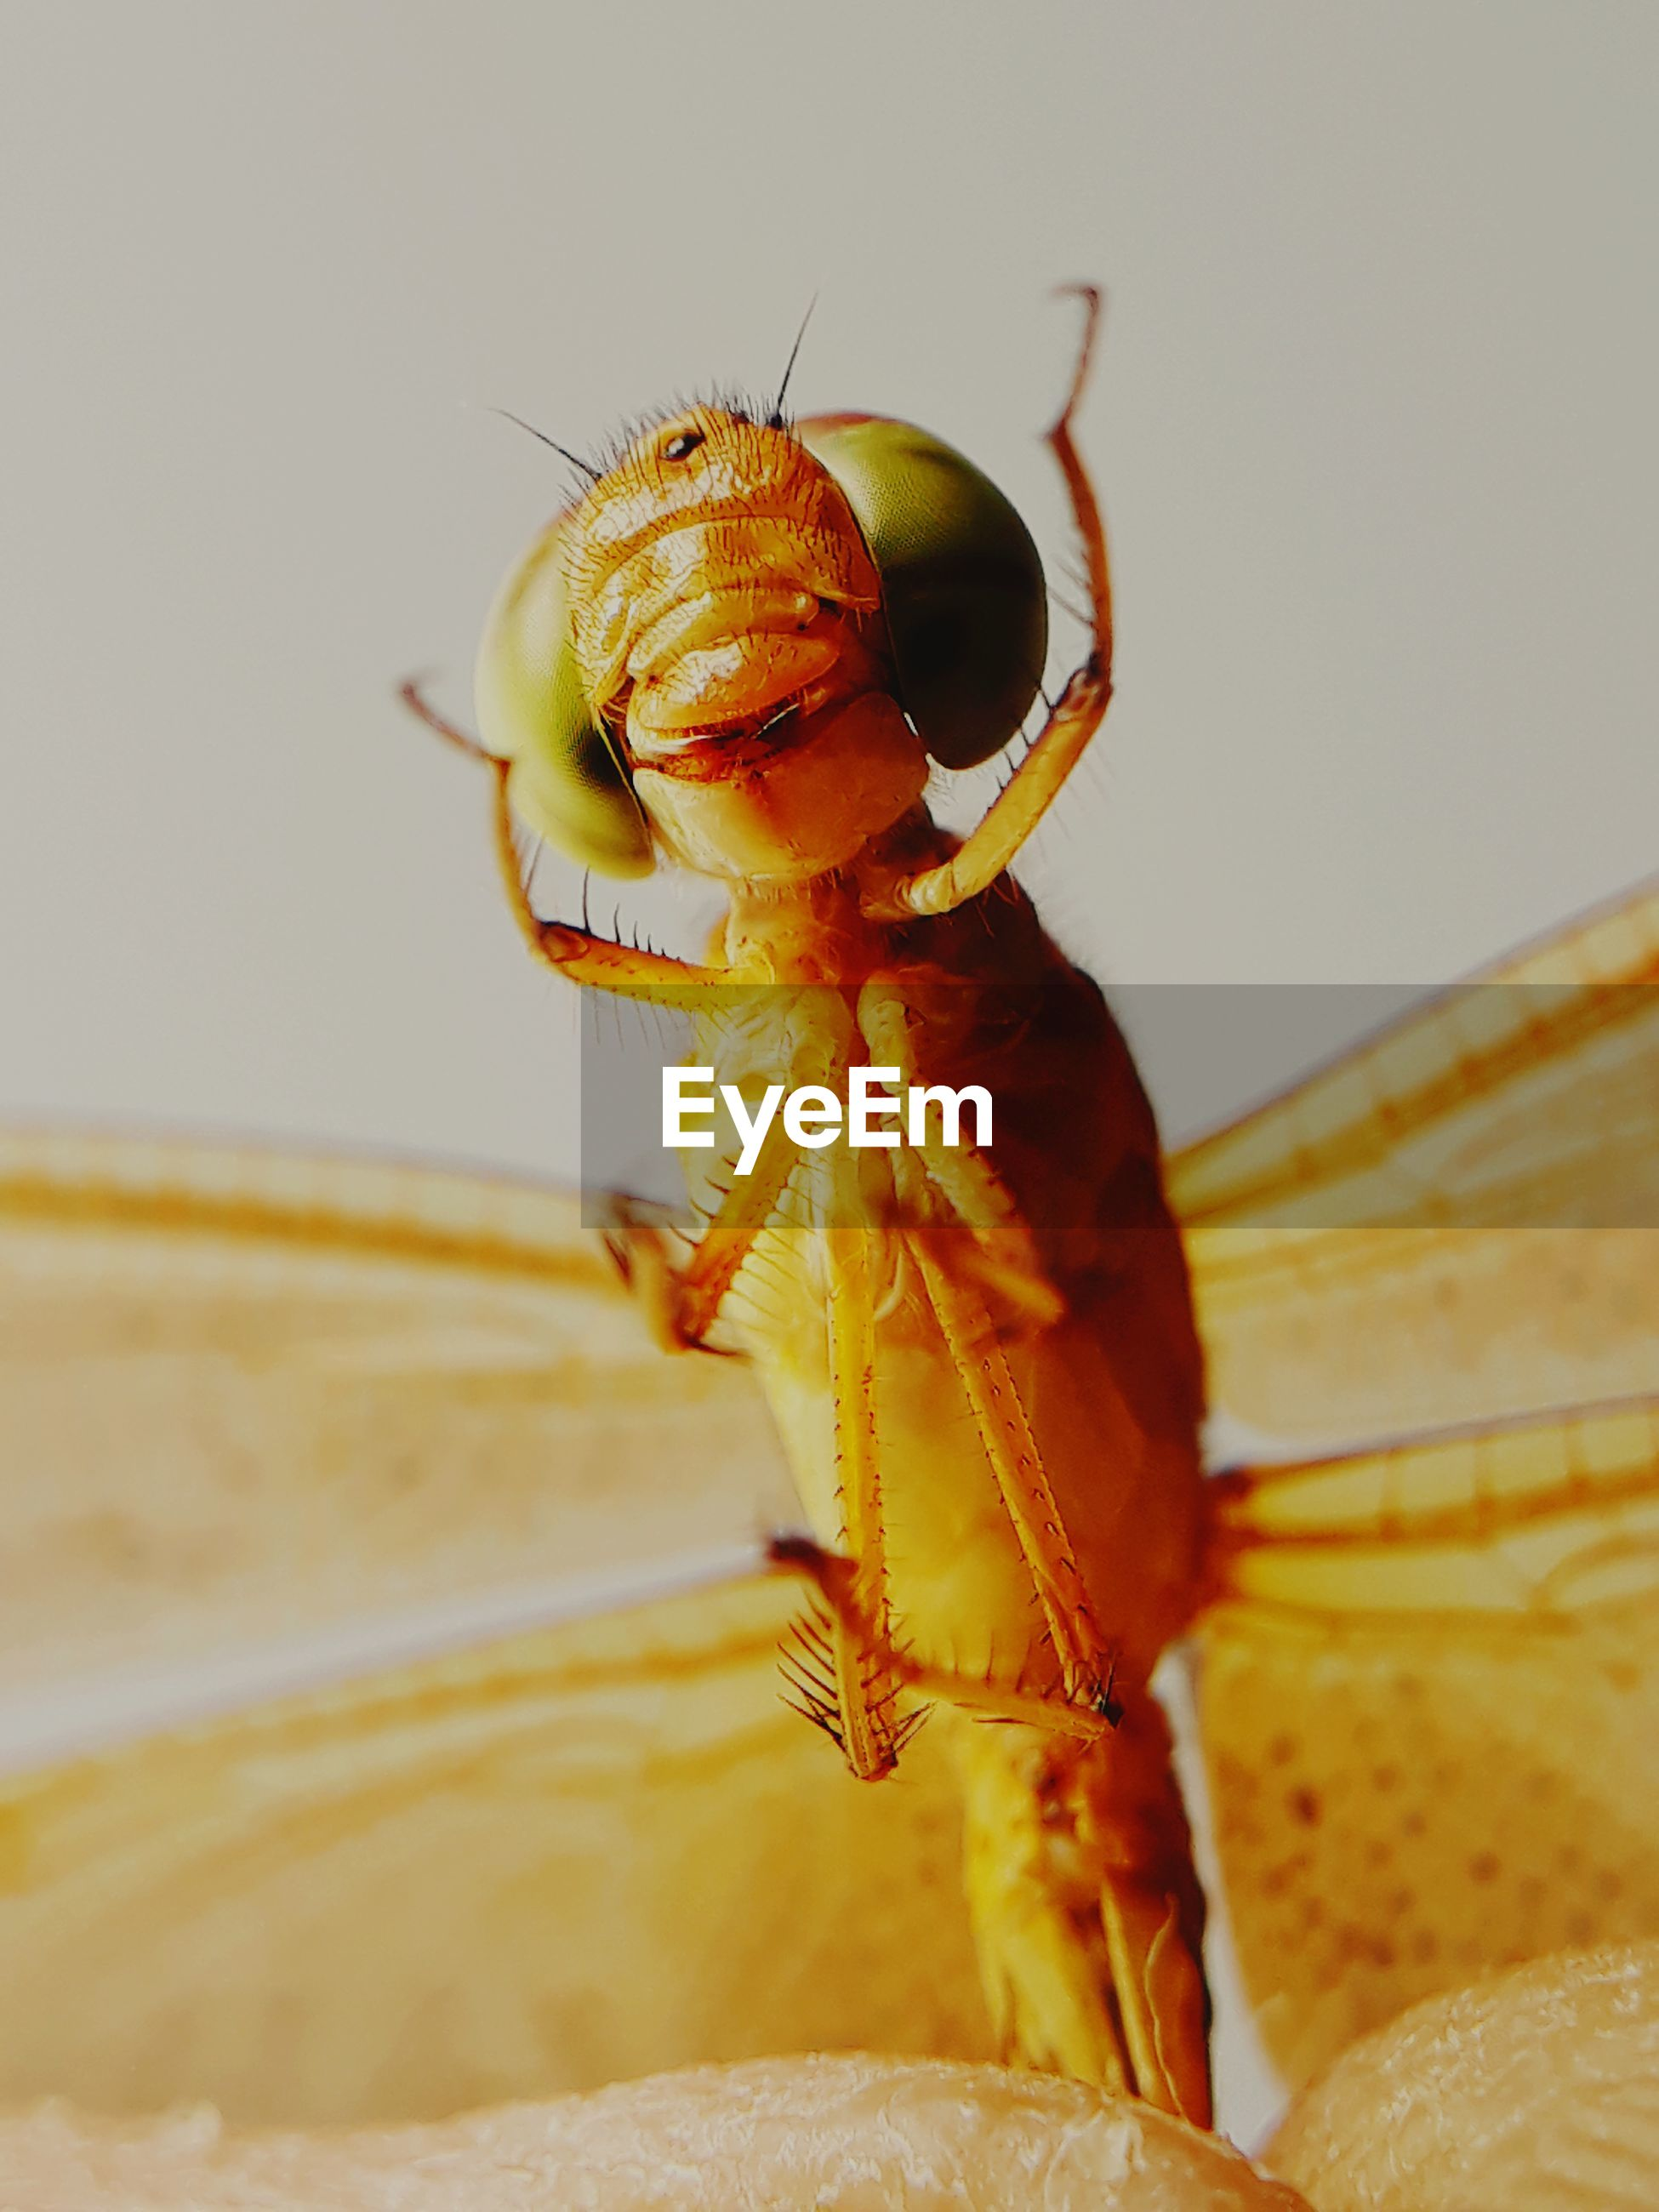 insect, invertebrate, close-up, animal, one animal, animal wildlife, animal themes, animals in the wild, selective focus, no people, indoors, focus on foreground, animal body part, day, nature, yellow, zoology, animal wing, macro, animal eye